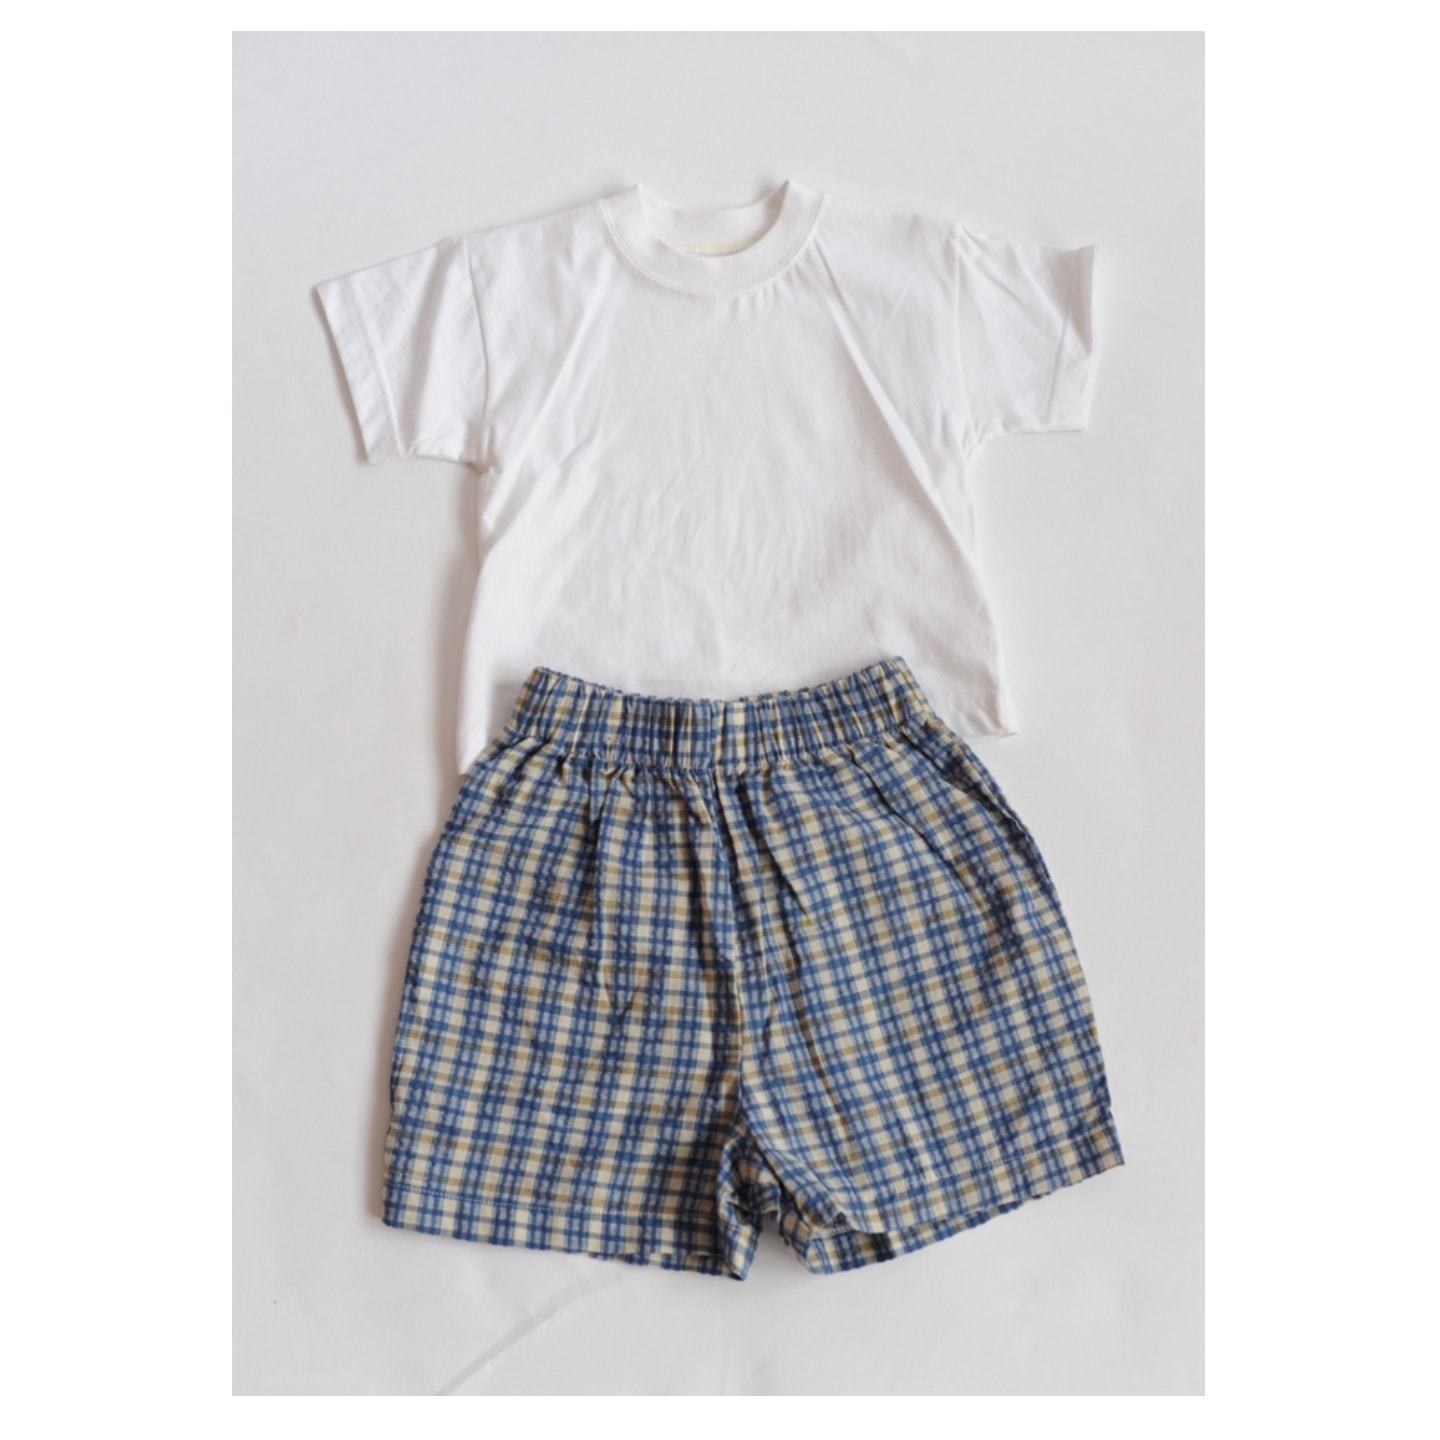 Baby Boys White Tees with Gingham design shorts